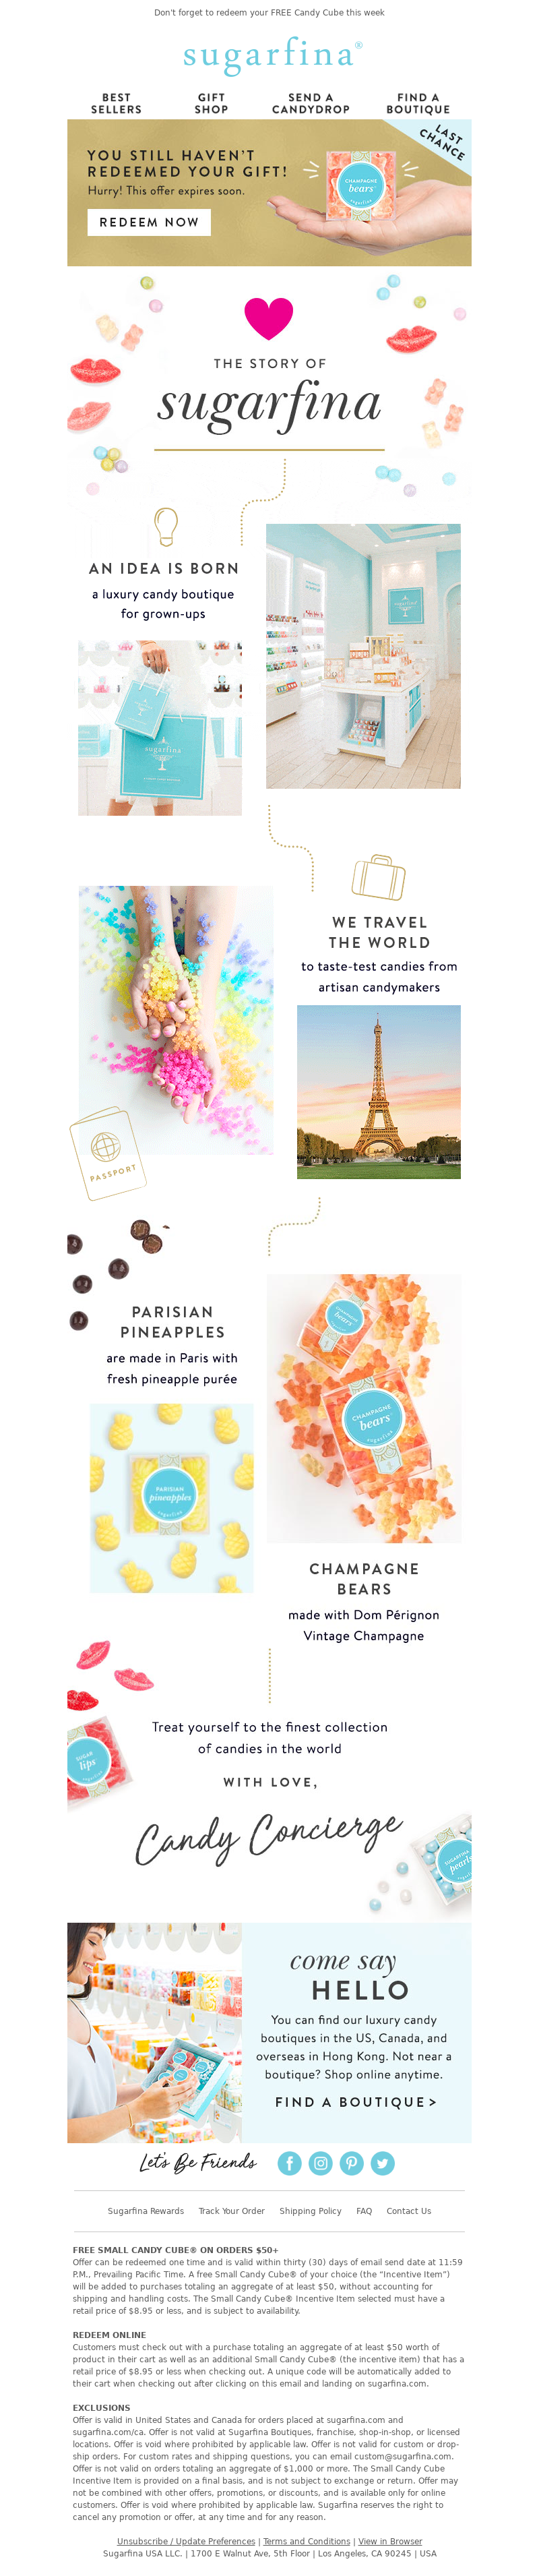 Don't forget to redeem your FREE Candy Cube this week Sugarfina Best Seller